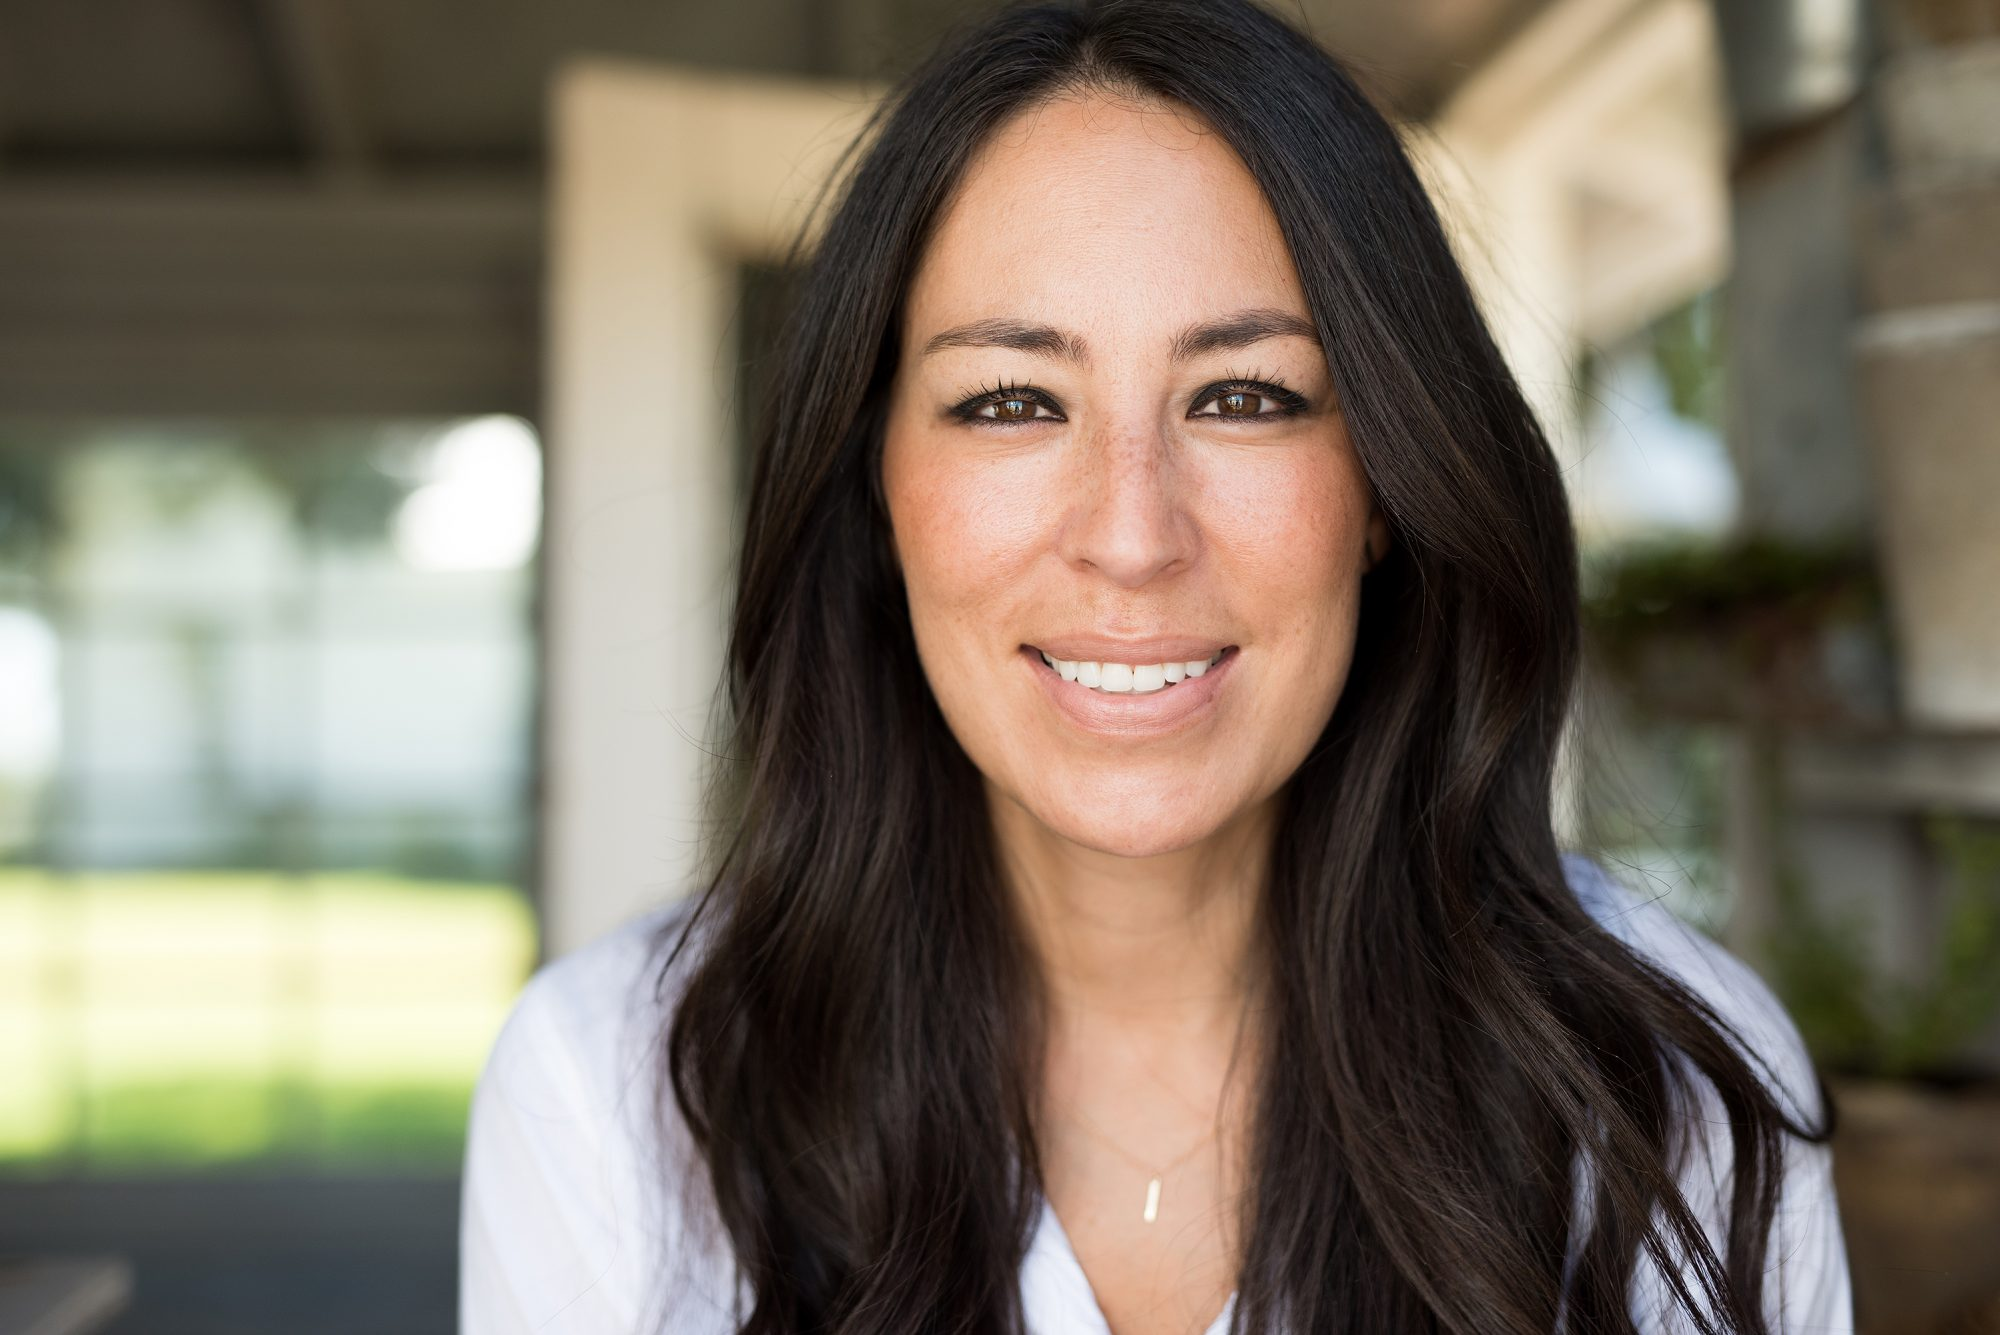 How Joanna Gaines Gave Up Being 'a Textbook Control Freak' and Found Happiness: 'I Used to Want to Do Everything, Be Everything'